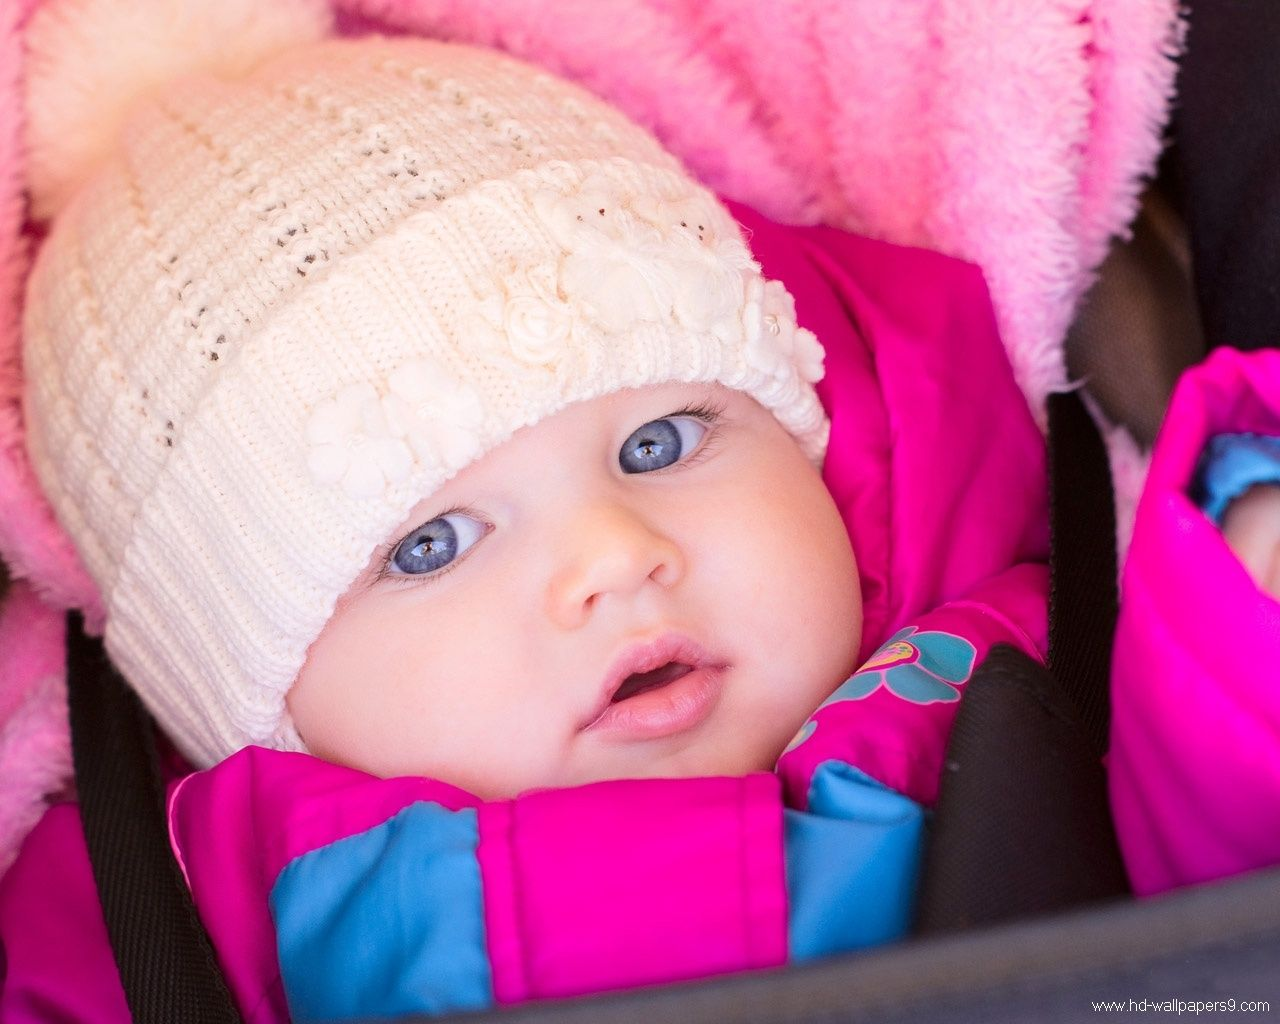 Cute Baby Wallpapers Free Download: Download Cute Baby Wallpapers Free Download For Desktop